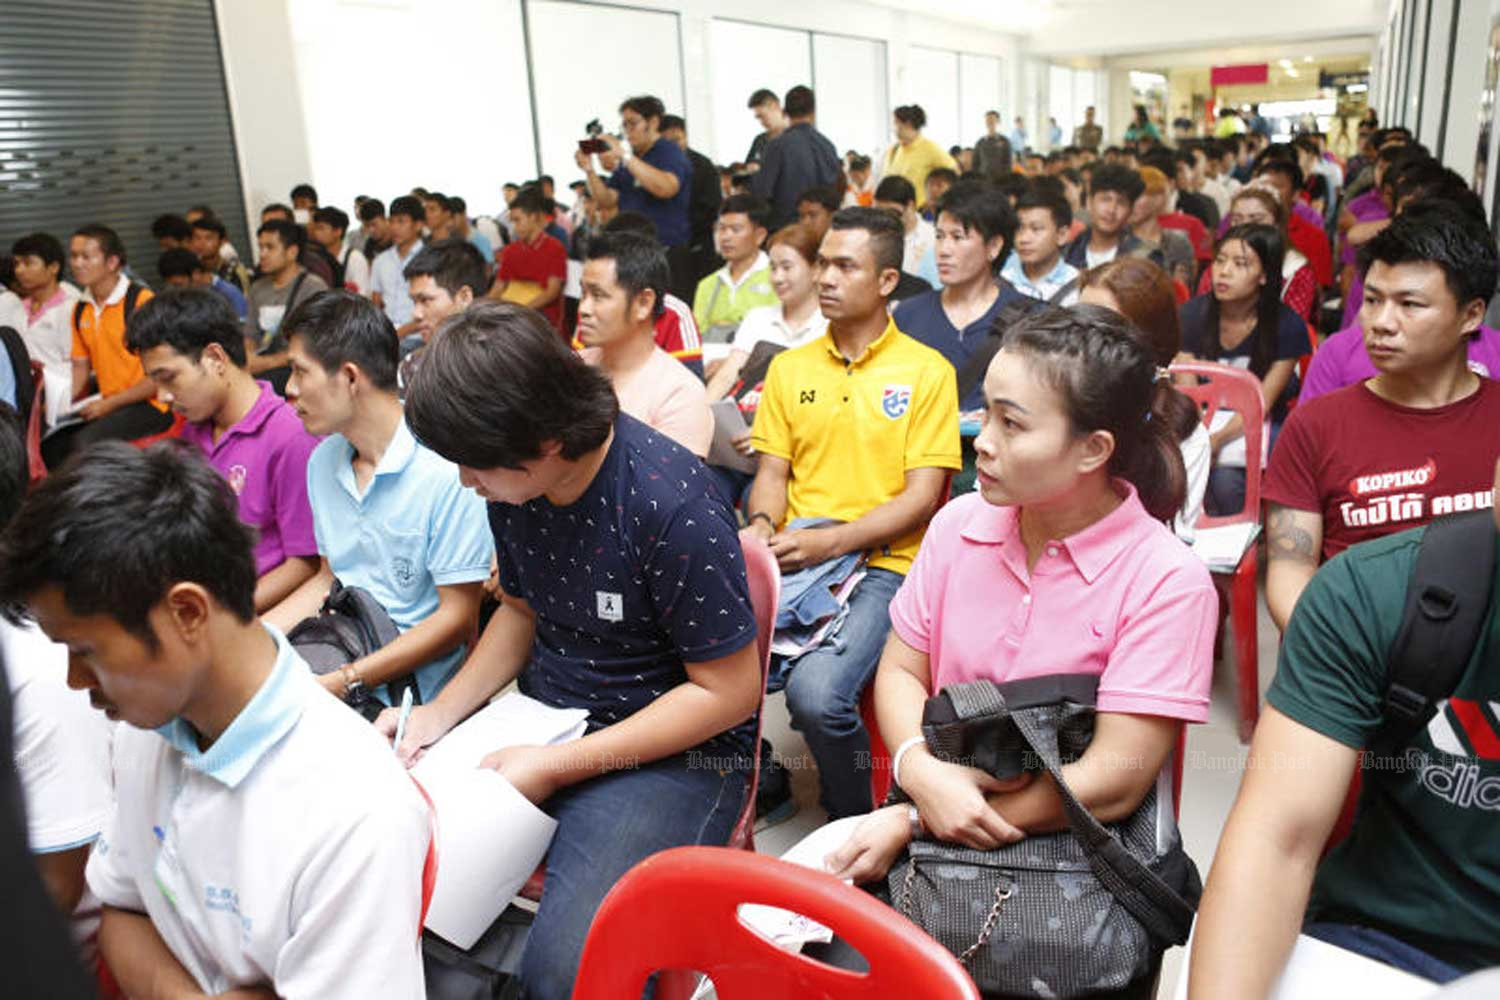 Thai workers seeking jobs in South Korea report to police for background checks after having passed the language skill tests. (File photo by Pattarapog Chatpattarasill)